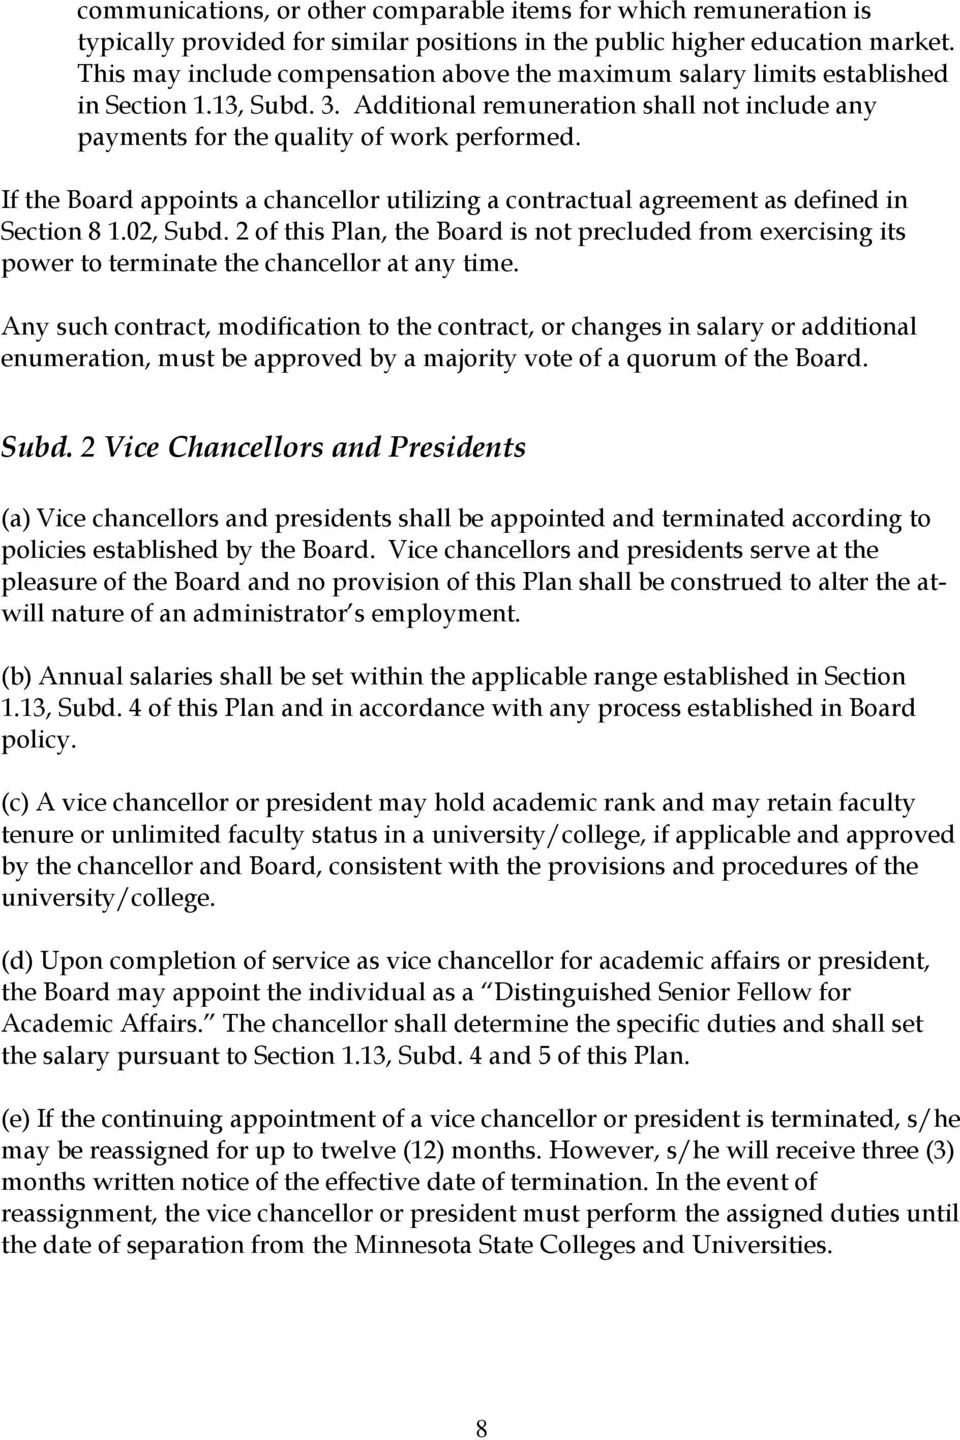 If the Board appoints a chancellor utilizing a contractual agreement as defined in Section 8 1.02, Subd.